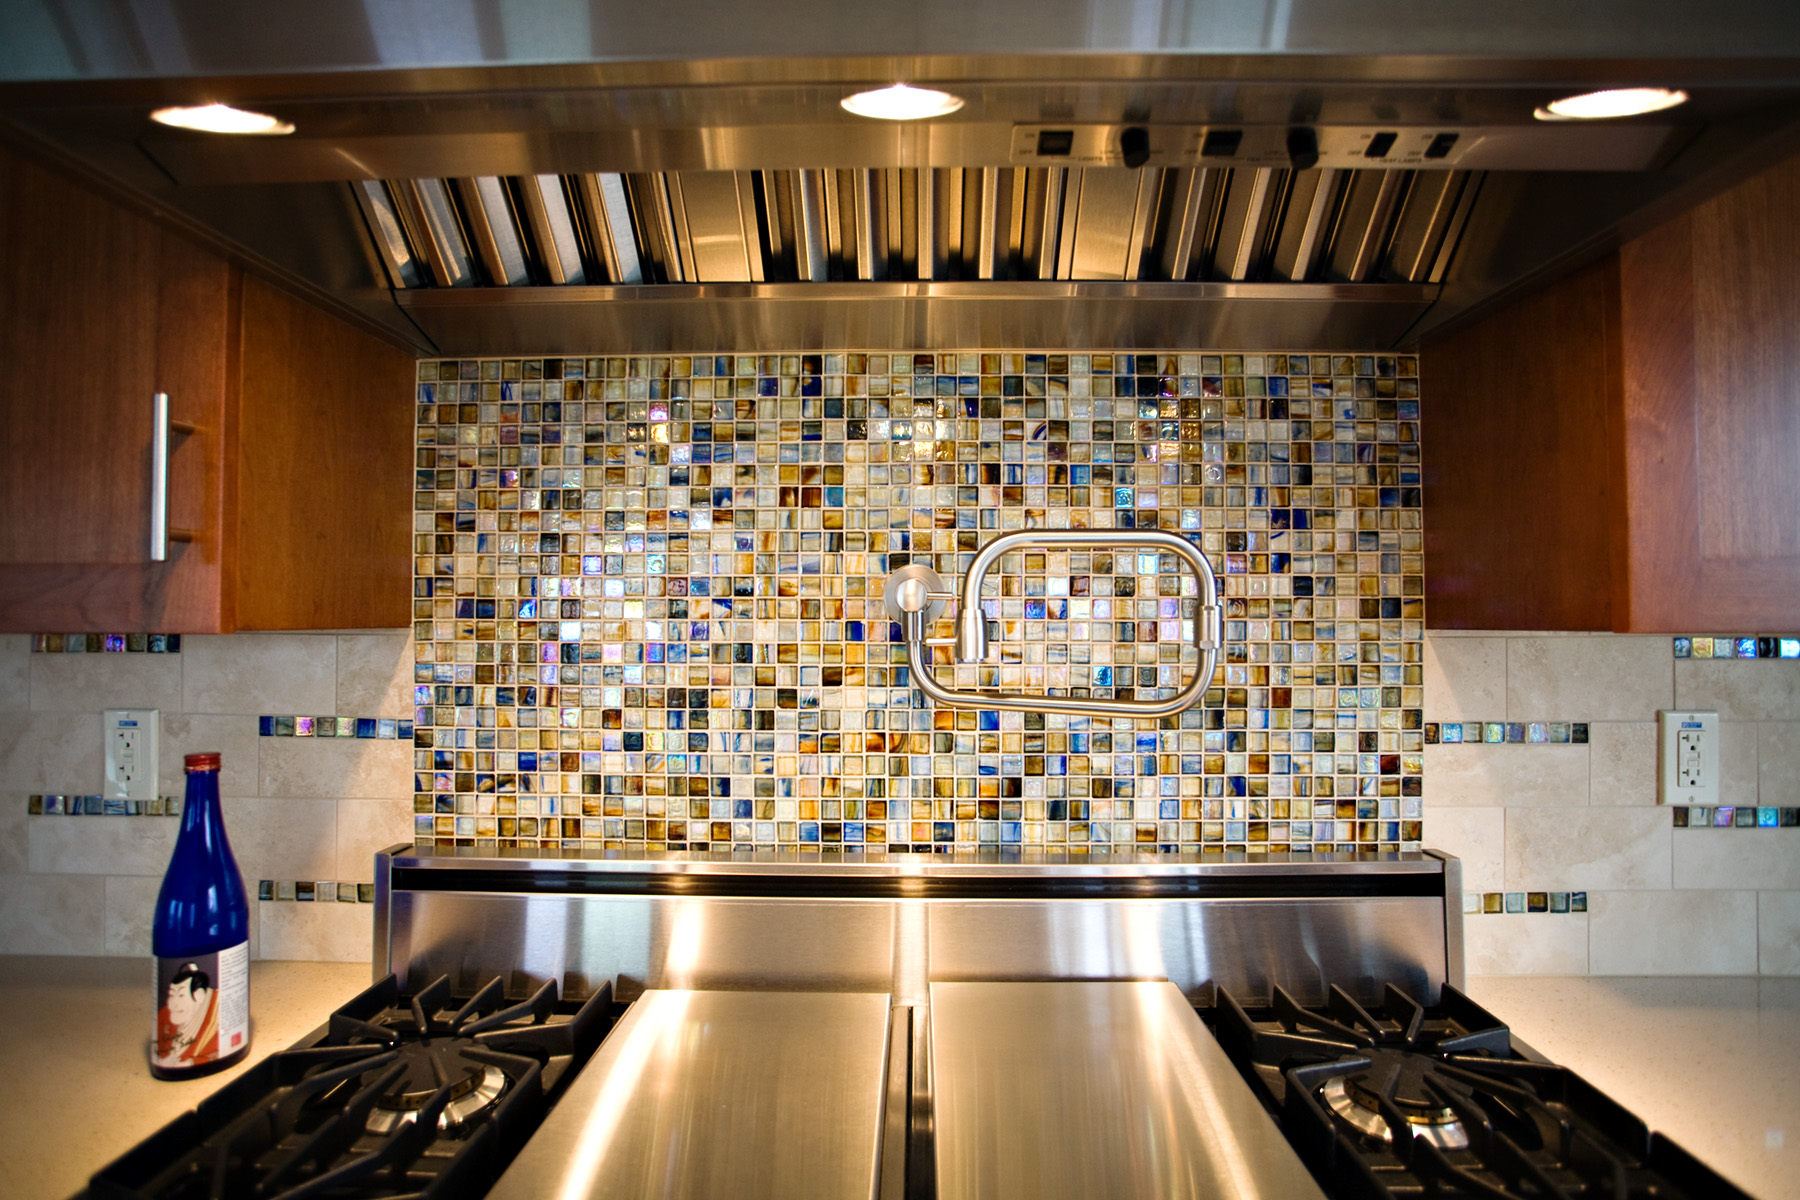 jewelstone_ji1240_backsplash_hirschglass